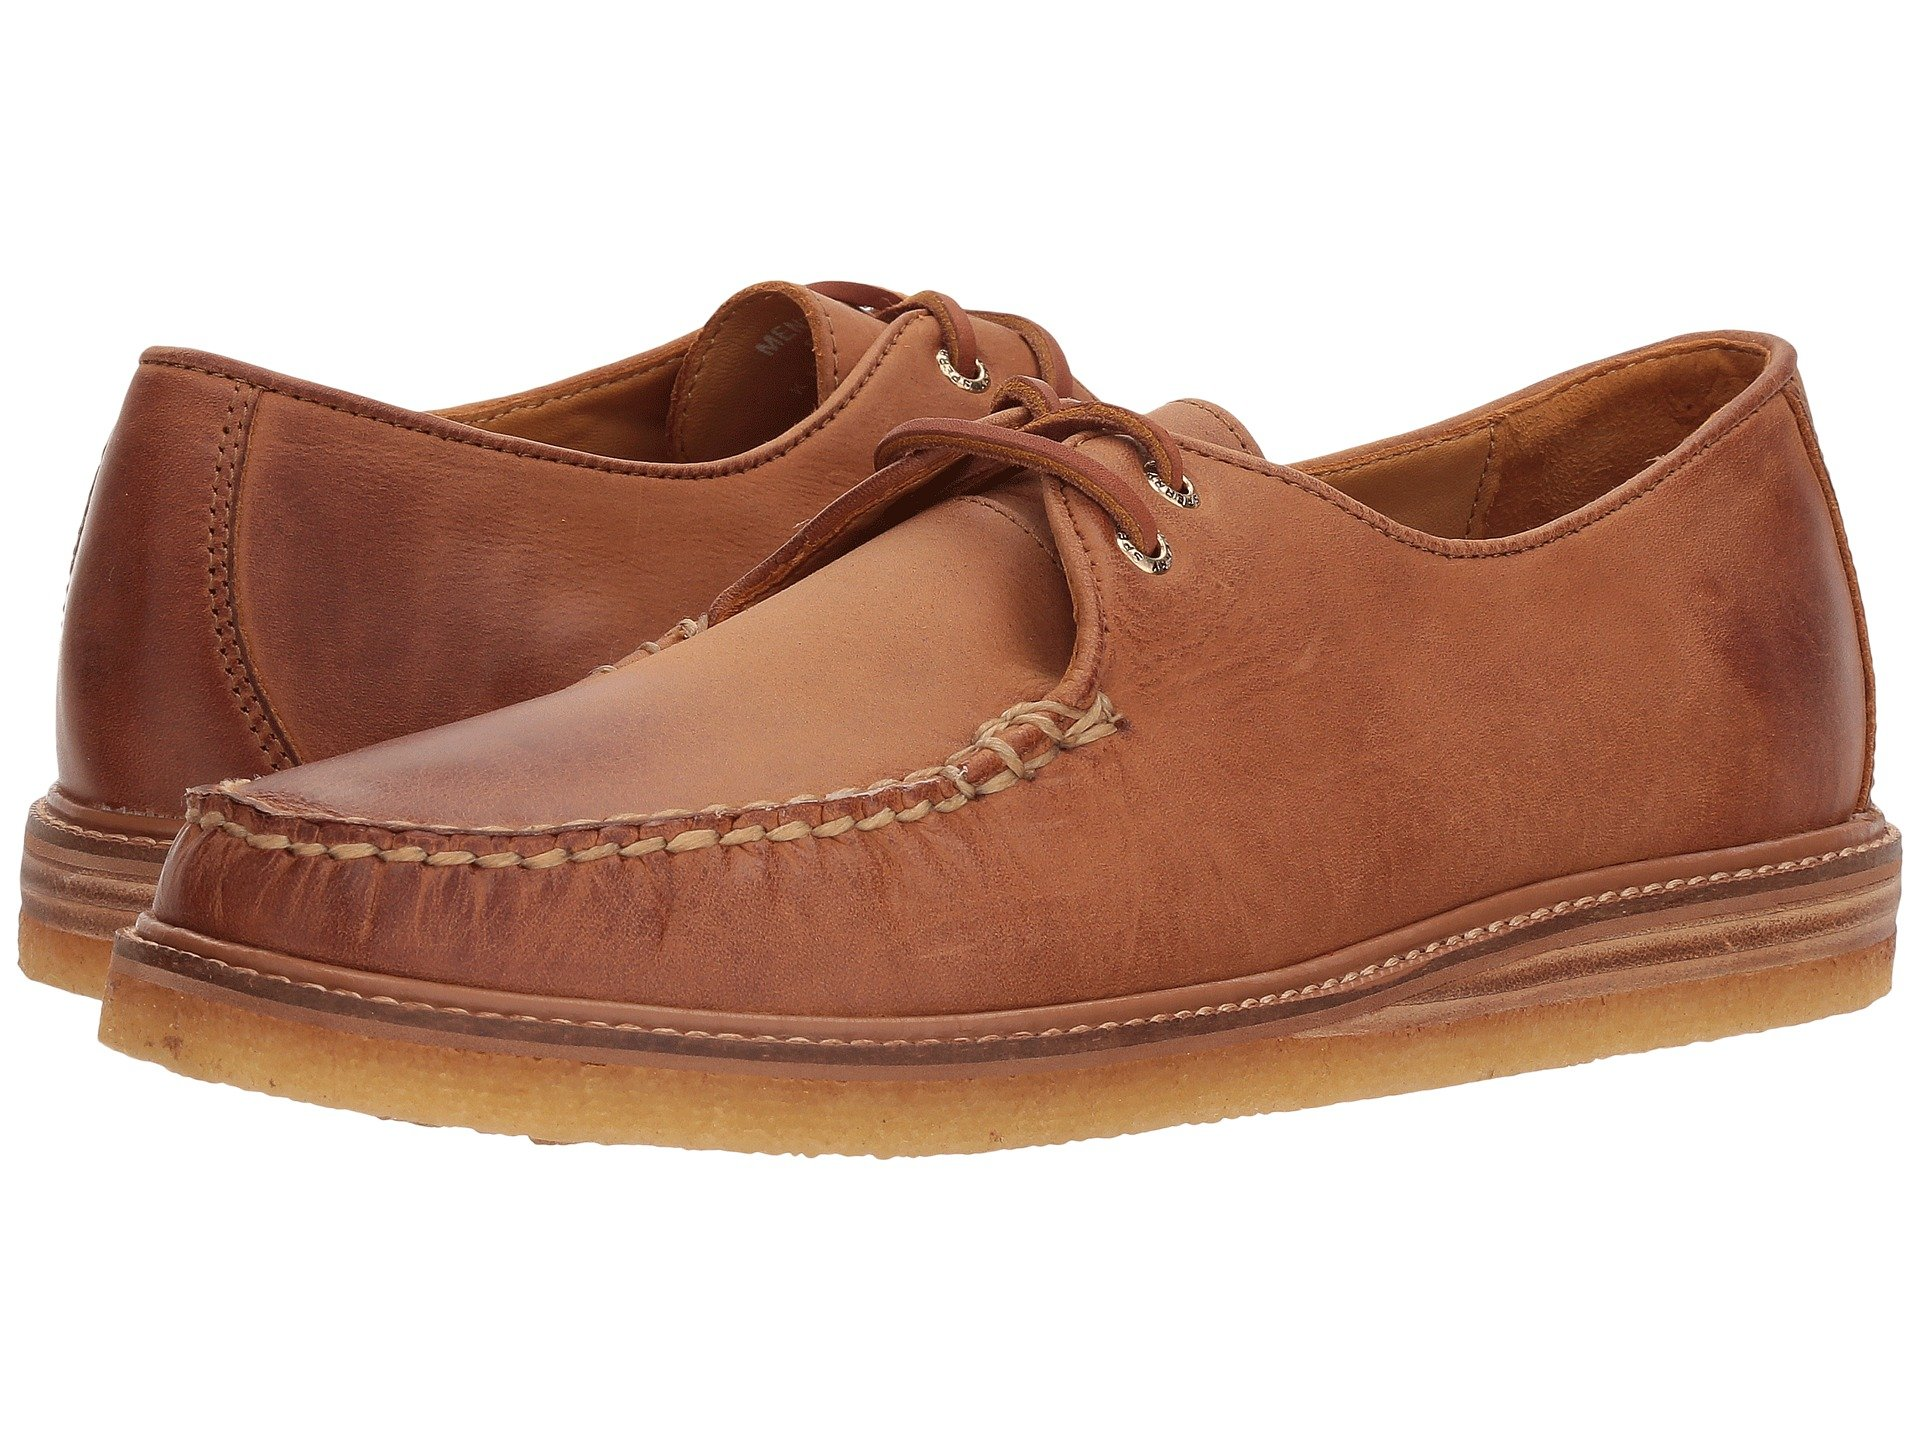 Sperry Boat Shoes Sandals Zappos